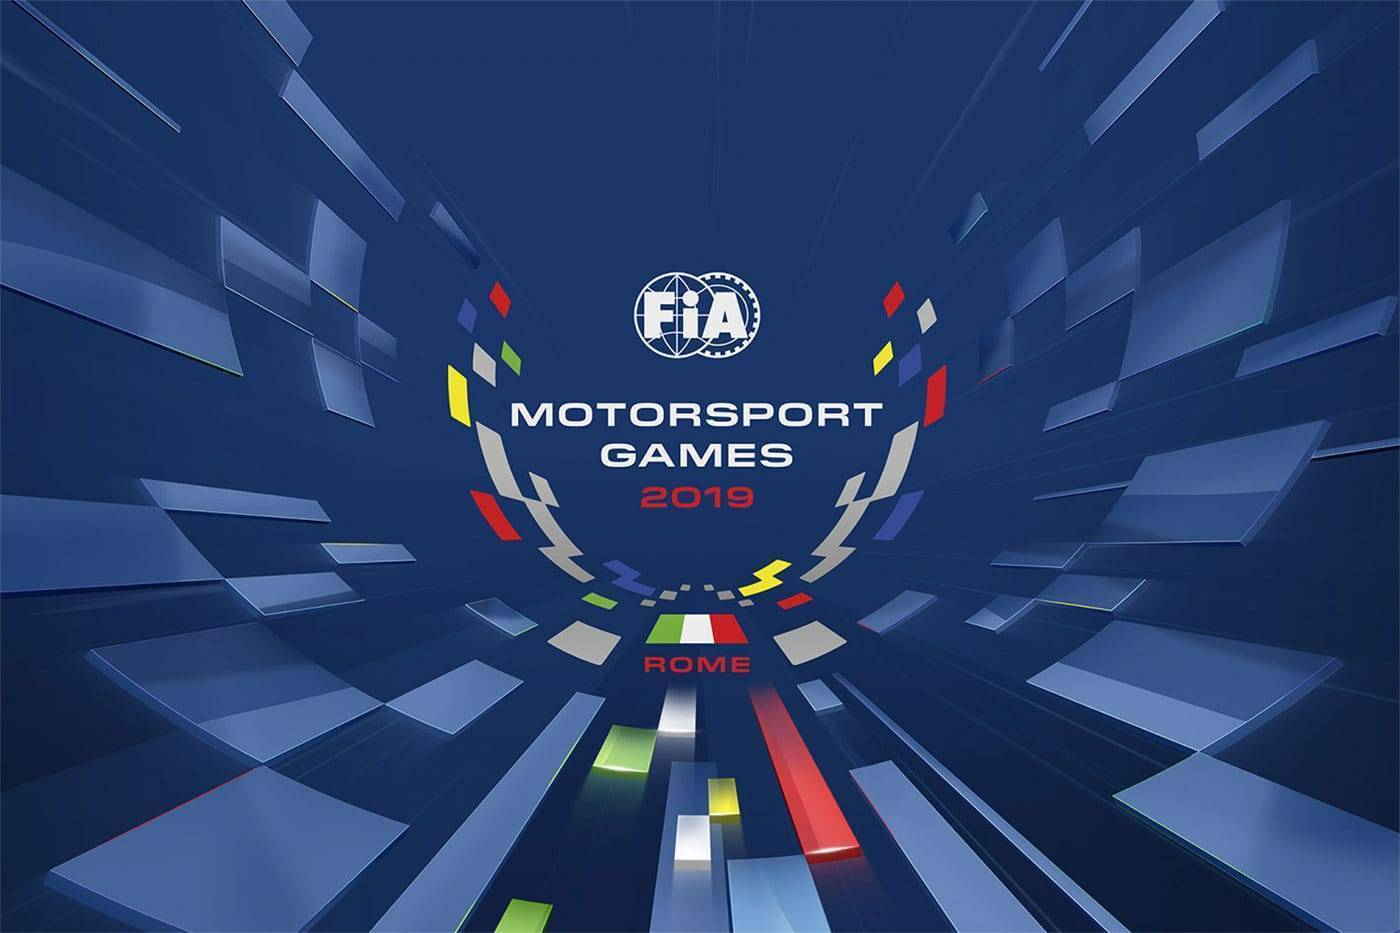 FIA-Motorsport-Games